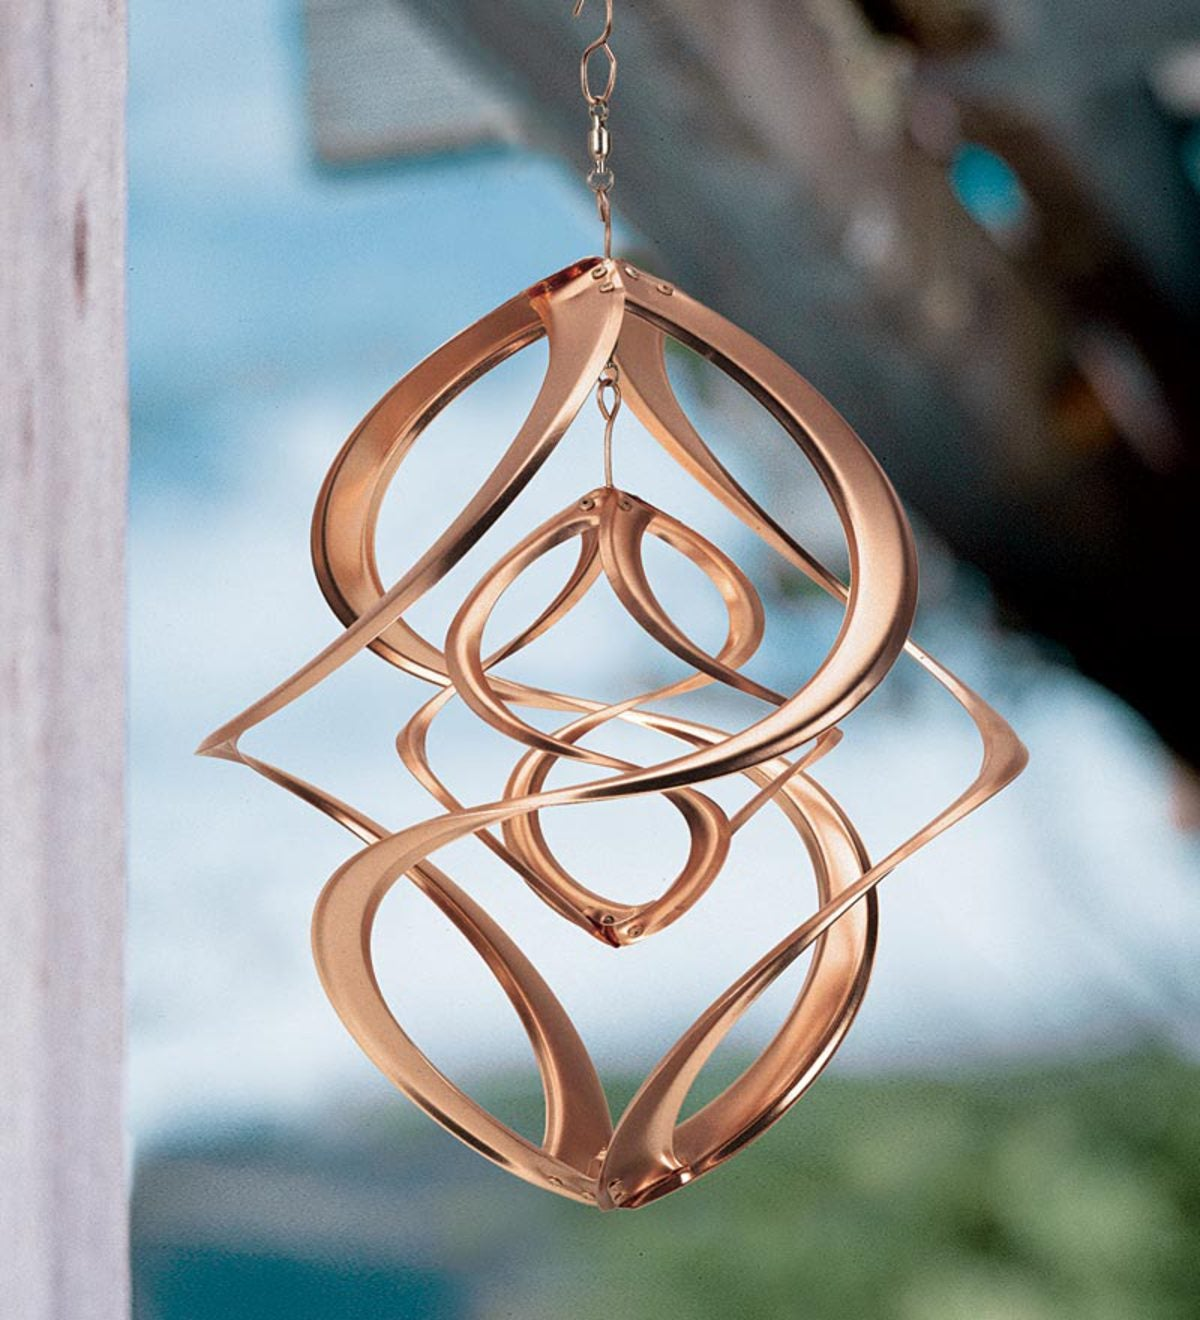 Copper-Plated Dual Spiral Hanging Metal Wind Spinner